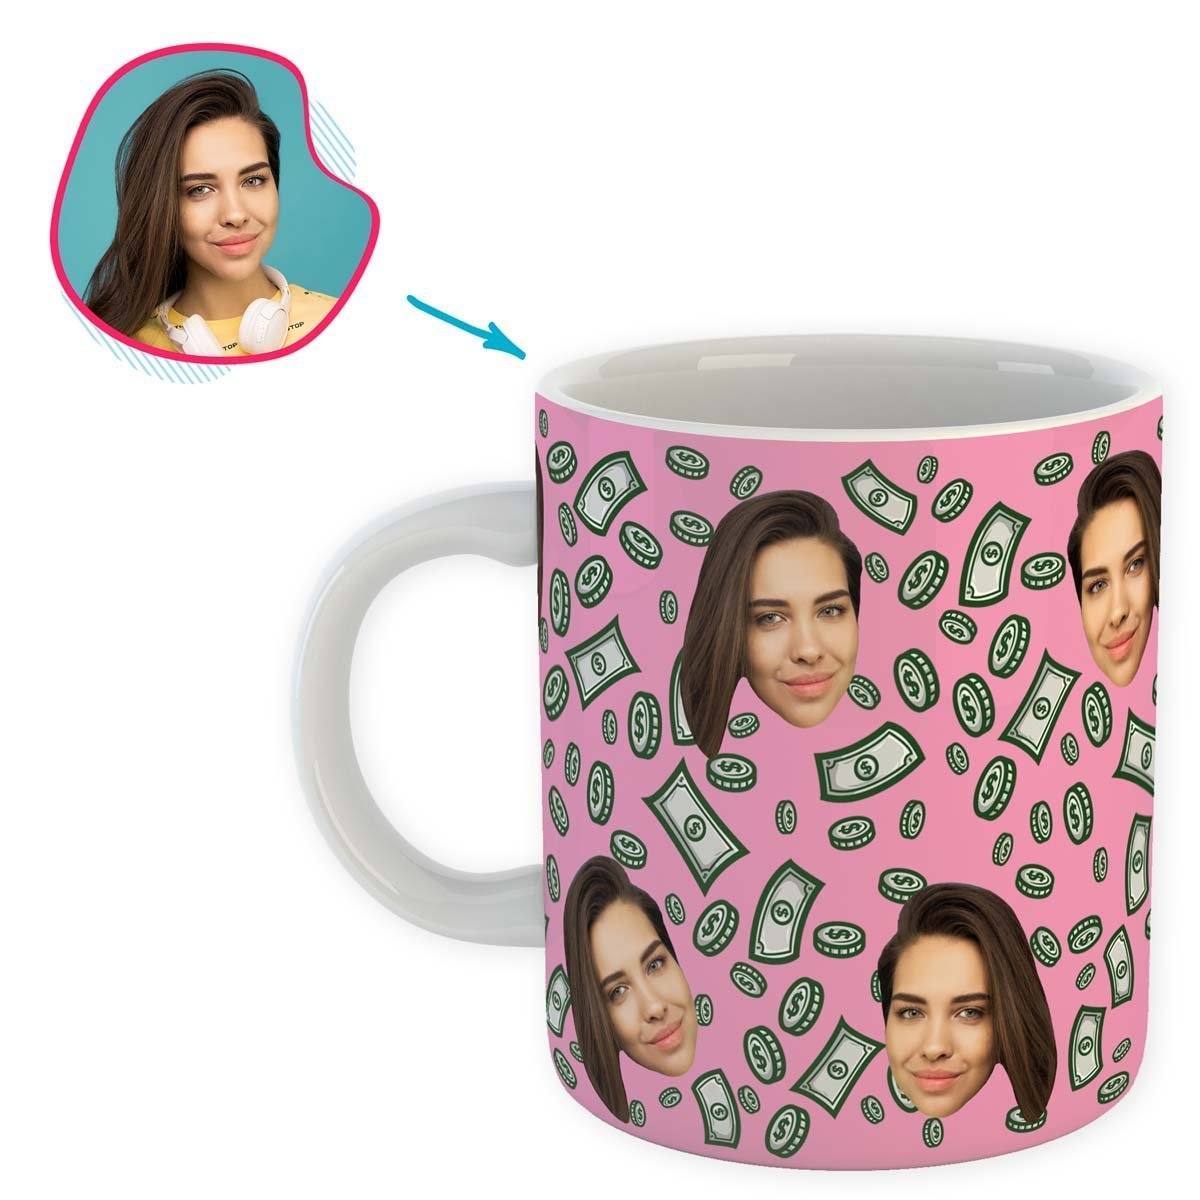 pink Money mug personalized with photo of face printed on it